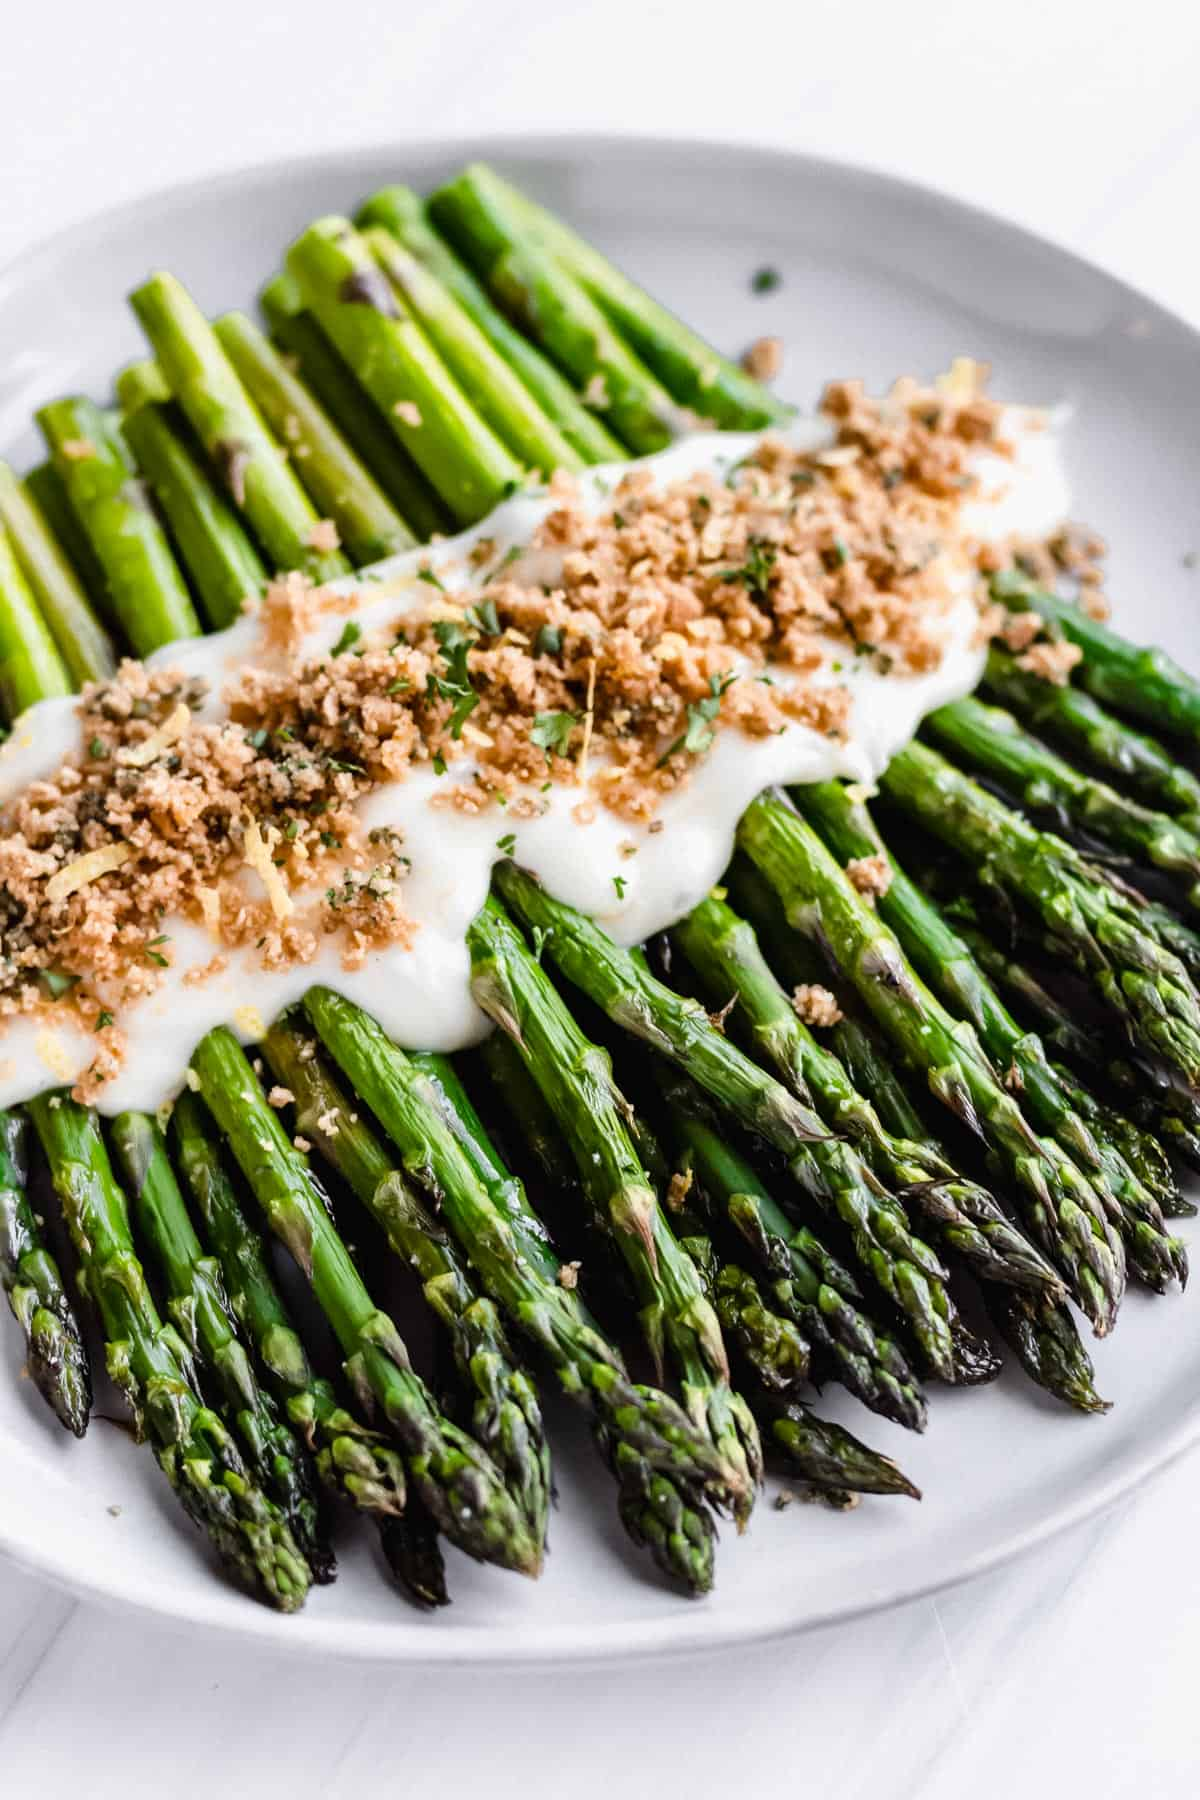 Broiled asparagus spears on a white plate topped with parmesan sauce and toasted almond flour bread crumbs